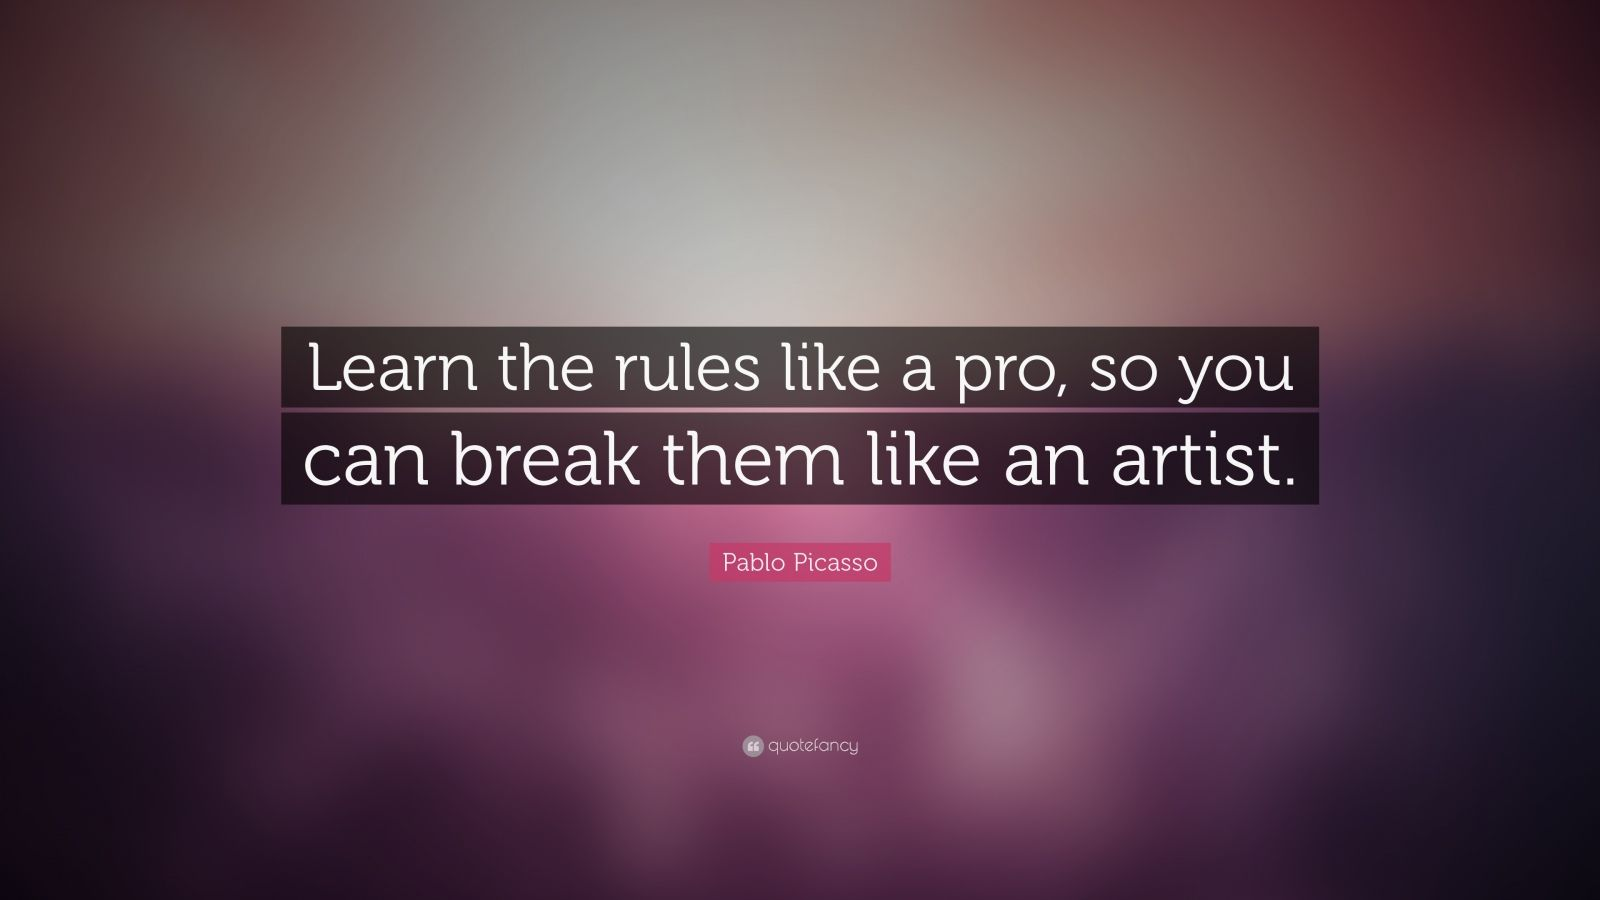 Persistence Quotes Wallpapers Pablo Picasso Quote Learn The Rules Like A Pro So You